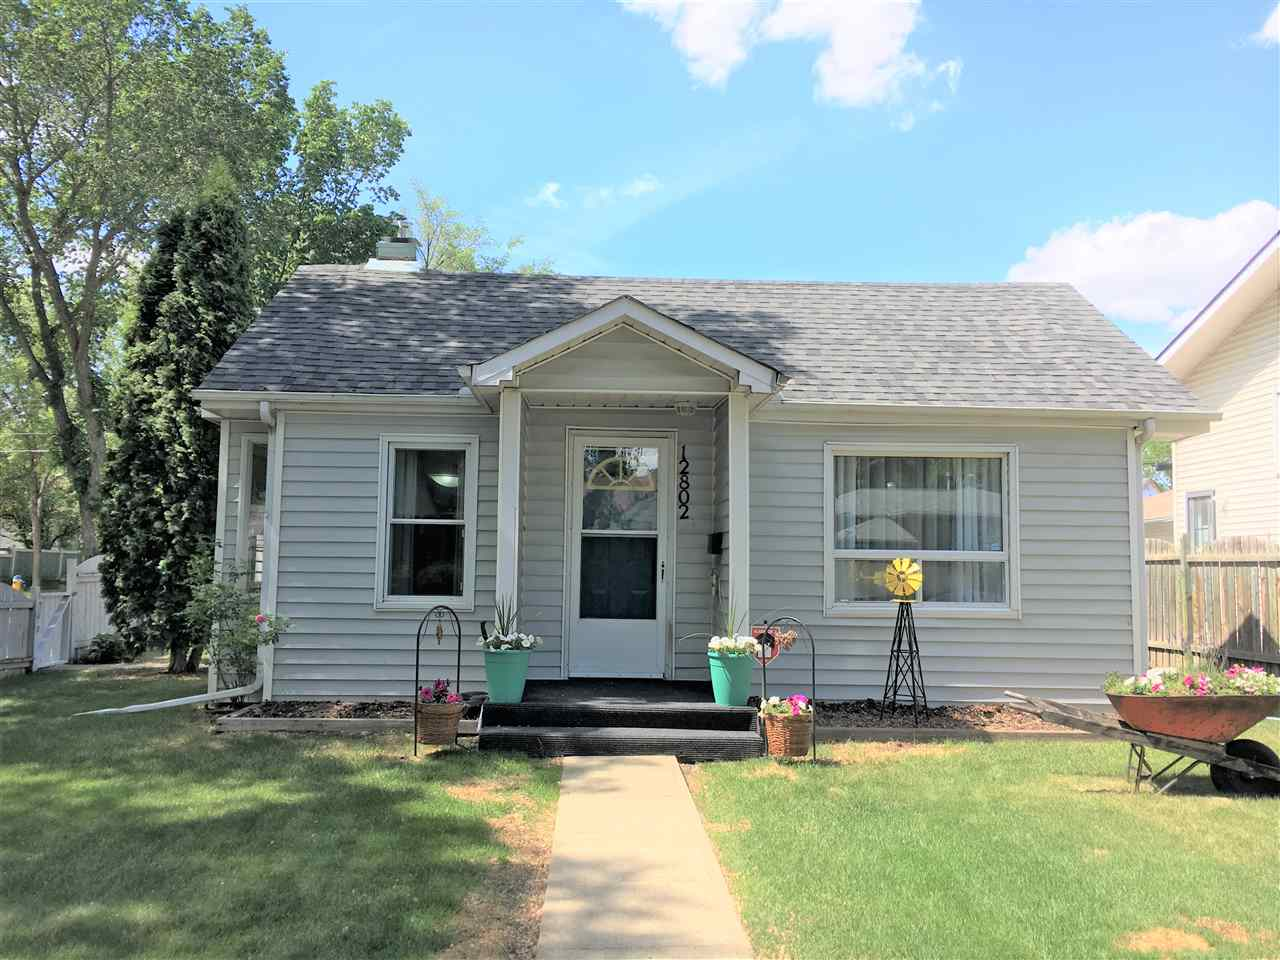 12802 124 Street, 2 bed, 1 bath, at $257,900